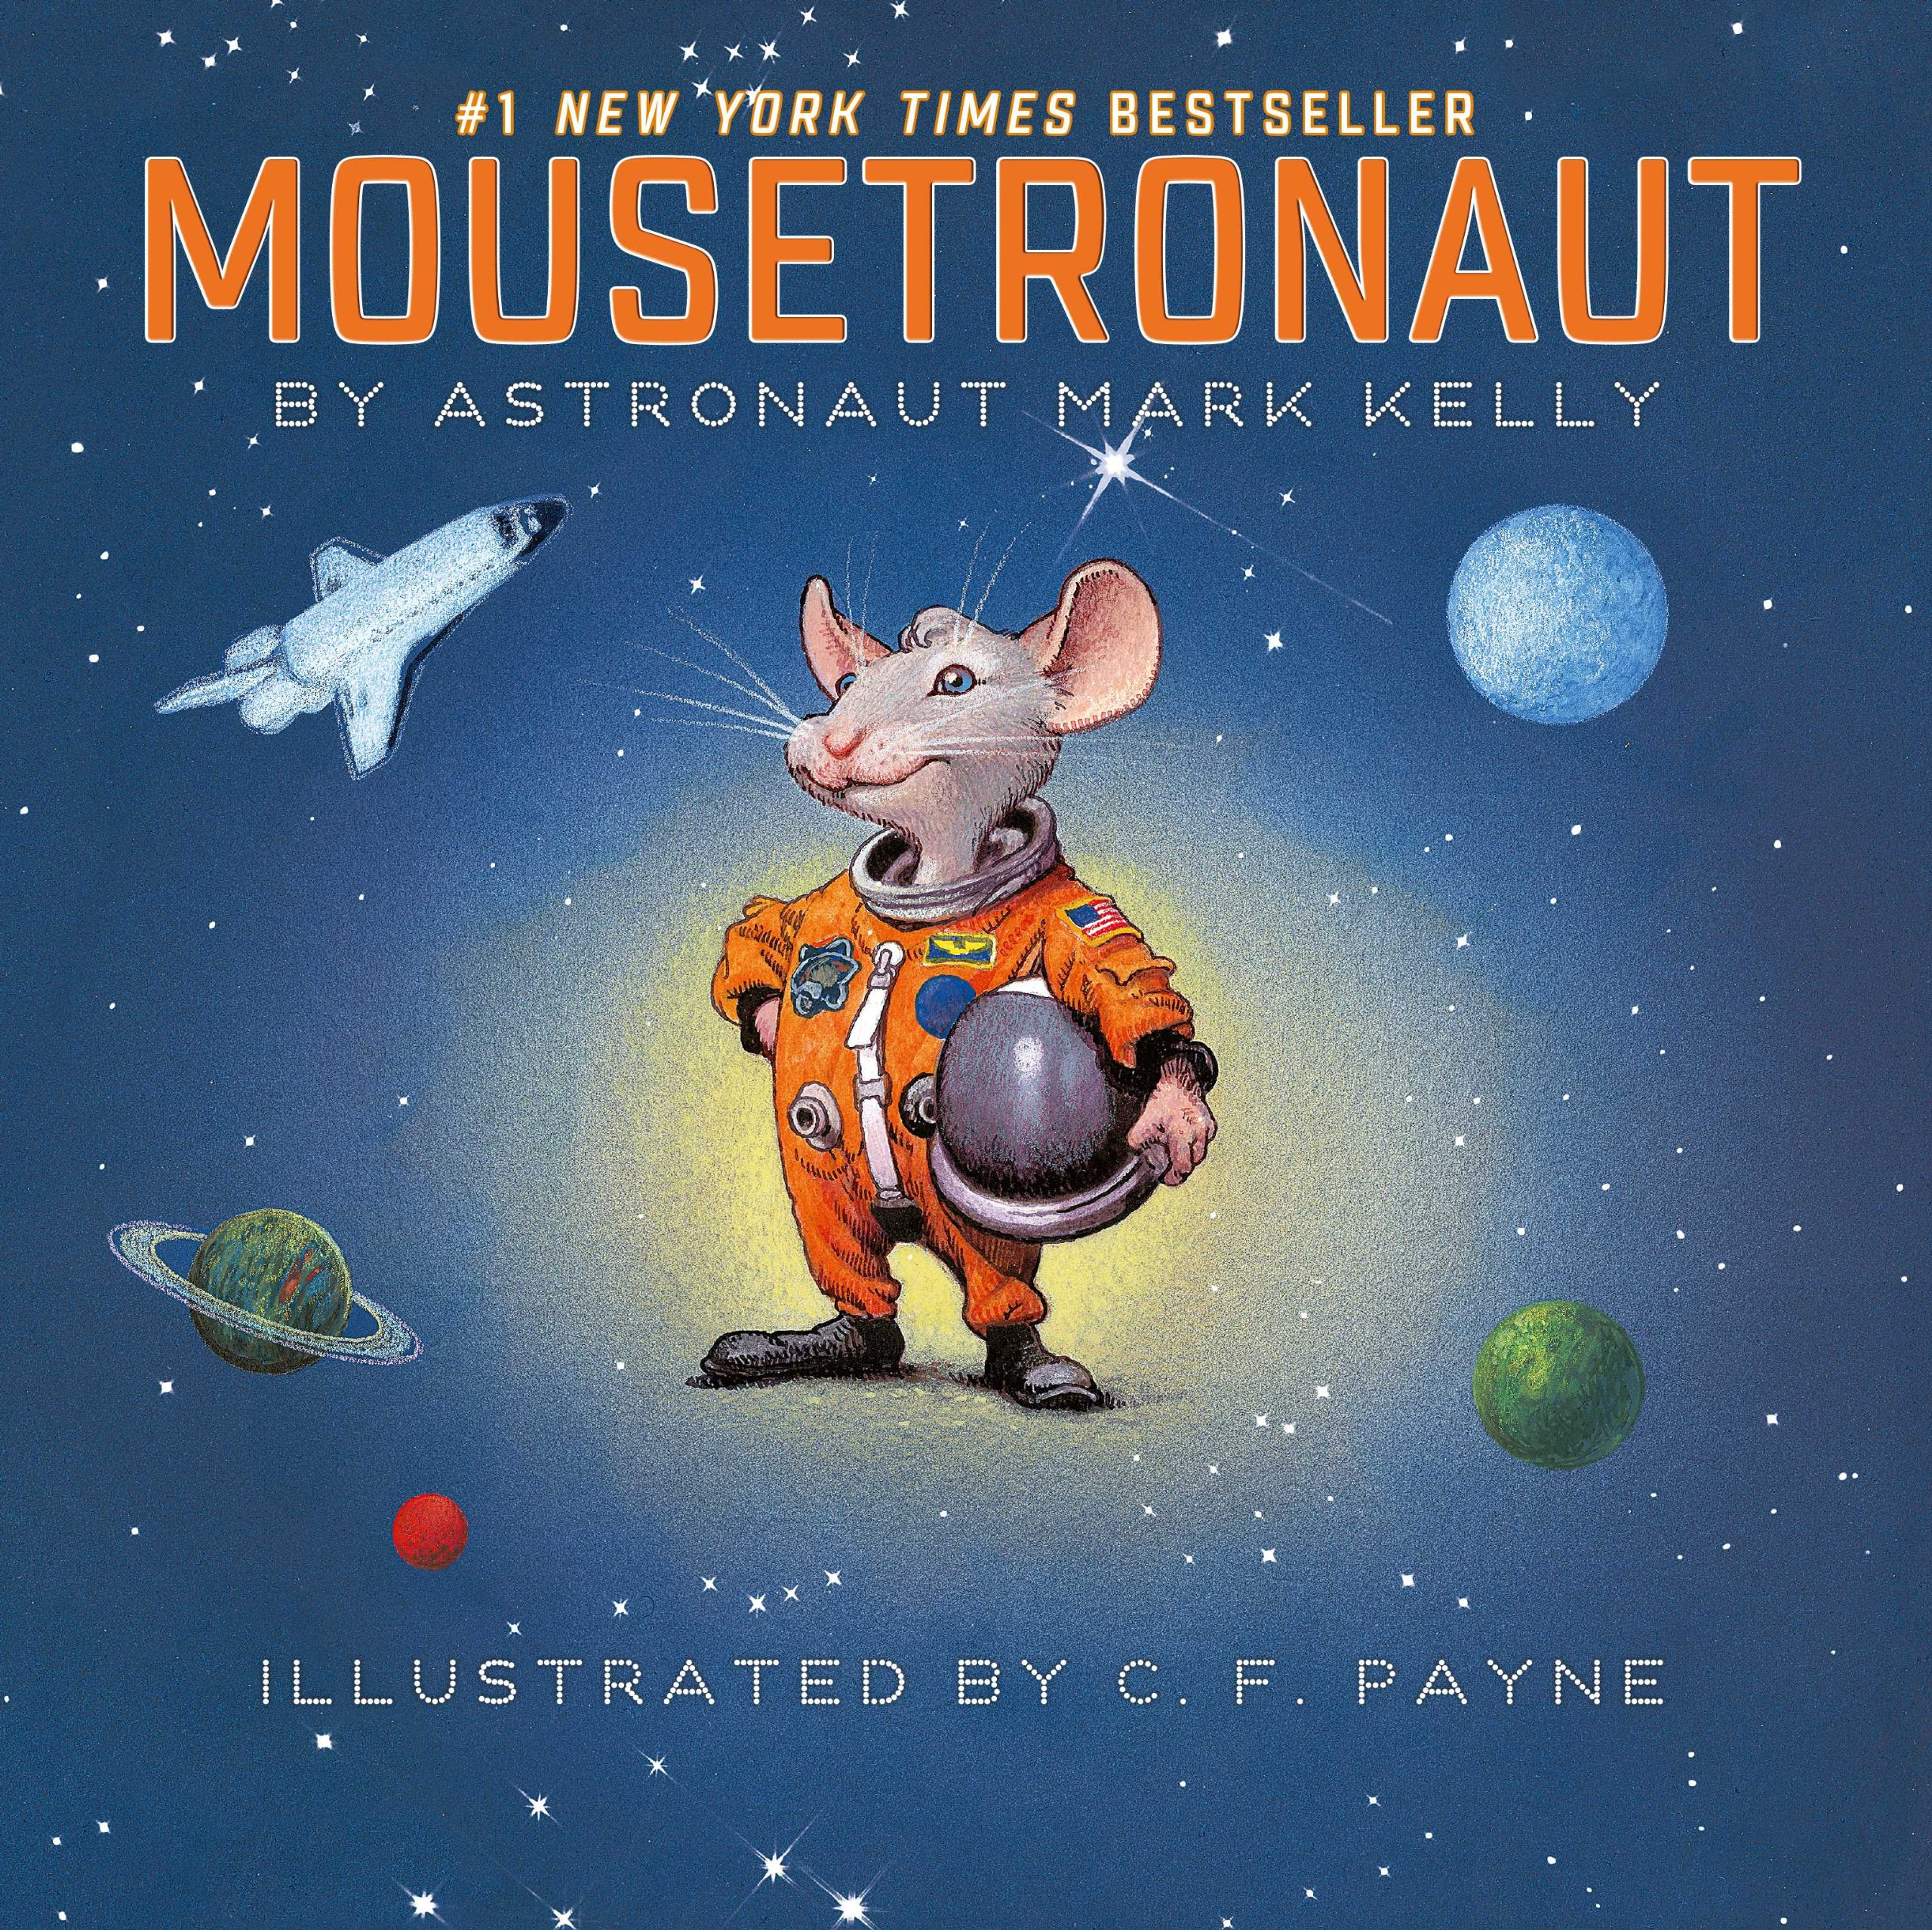 space mousetronaut